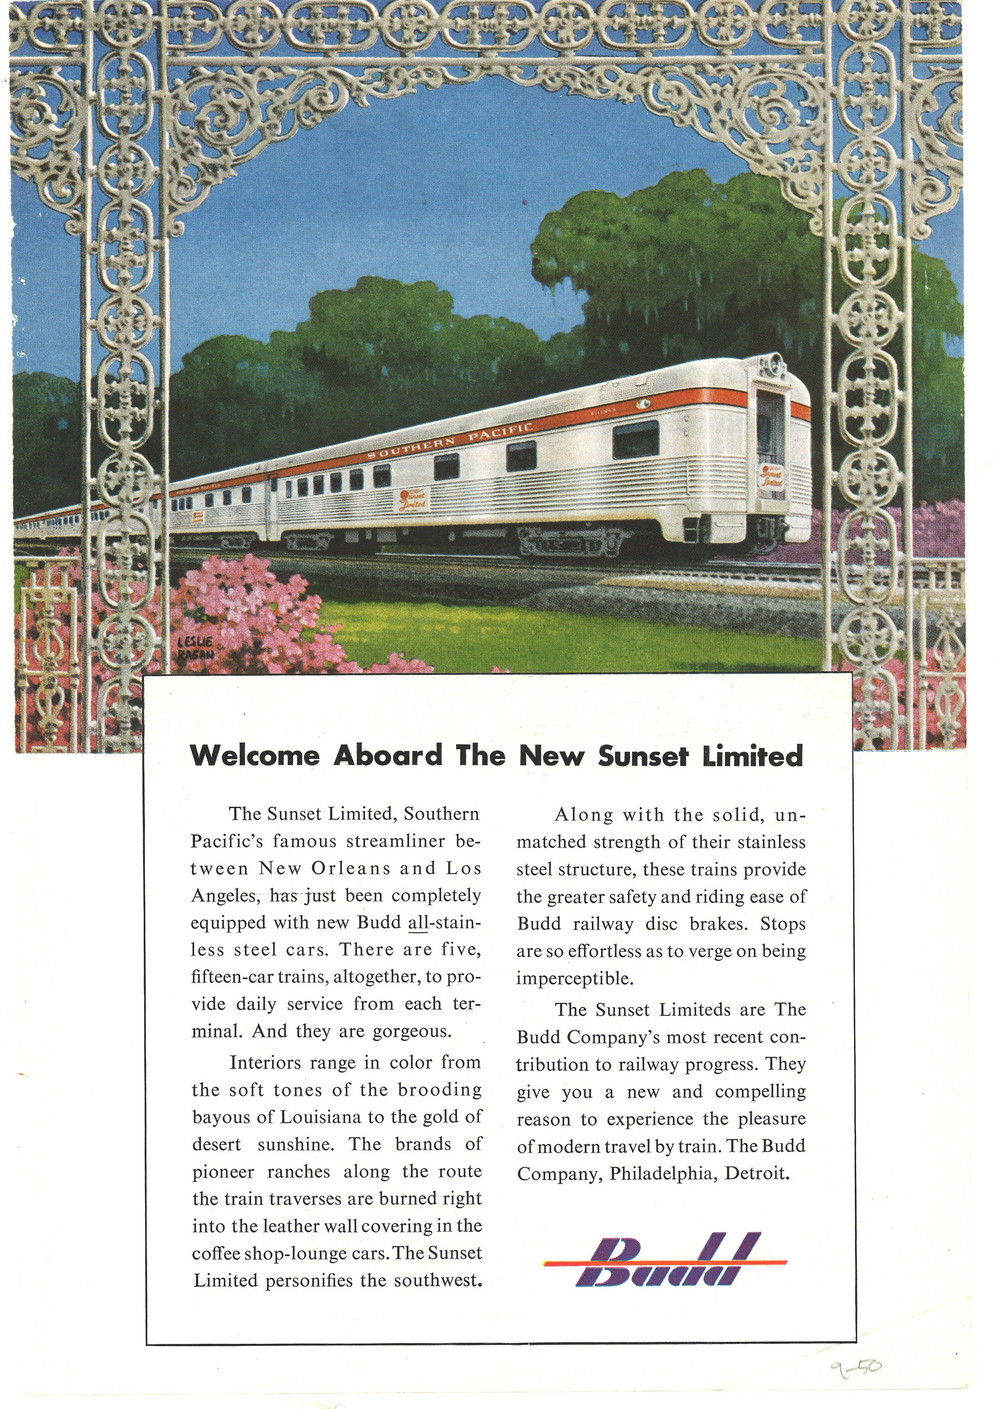 Budd - Welcome Aboard The New Sunset Limited.jpg